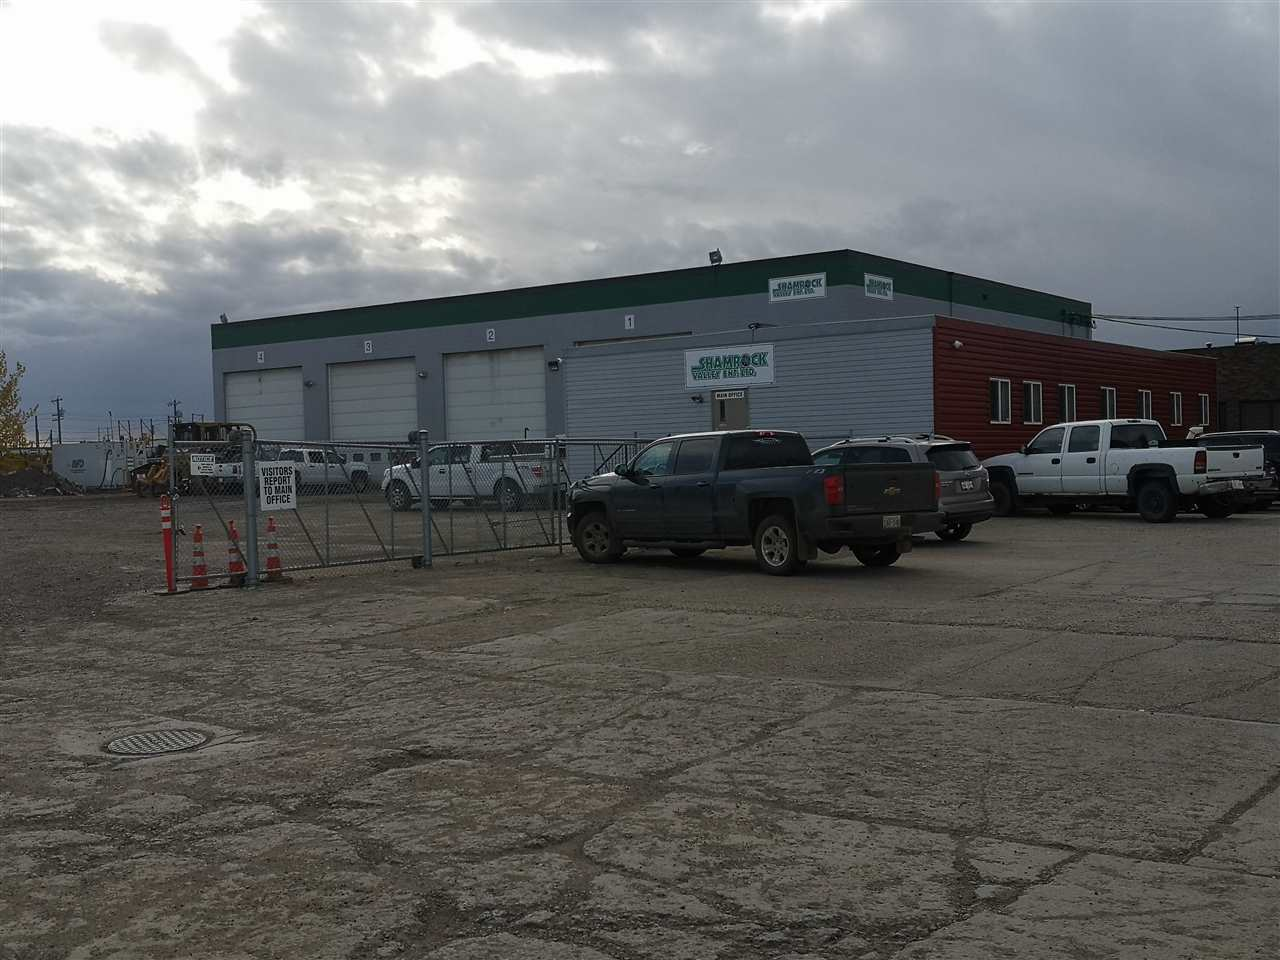 REDUCED! Excellent Industrial site with 2 - 10 ton & 1 - 5 Ton cranes, wash bay, tool room and everything you need to service heavy equipment. Convenient location just off 170 St and close to the Yellowhead. Yard is fenced and secured. 20x20' shop doors, approx 1.5 Acre yard space ready for heavy equipment. 9434 sq ft shop space balance in office space. Mezzanine of 1517 included which consists of storage/lunchroom/locker area. Flexible lease options. High efficiency radiant heat being installed.